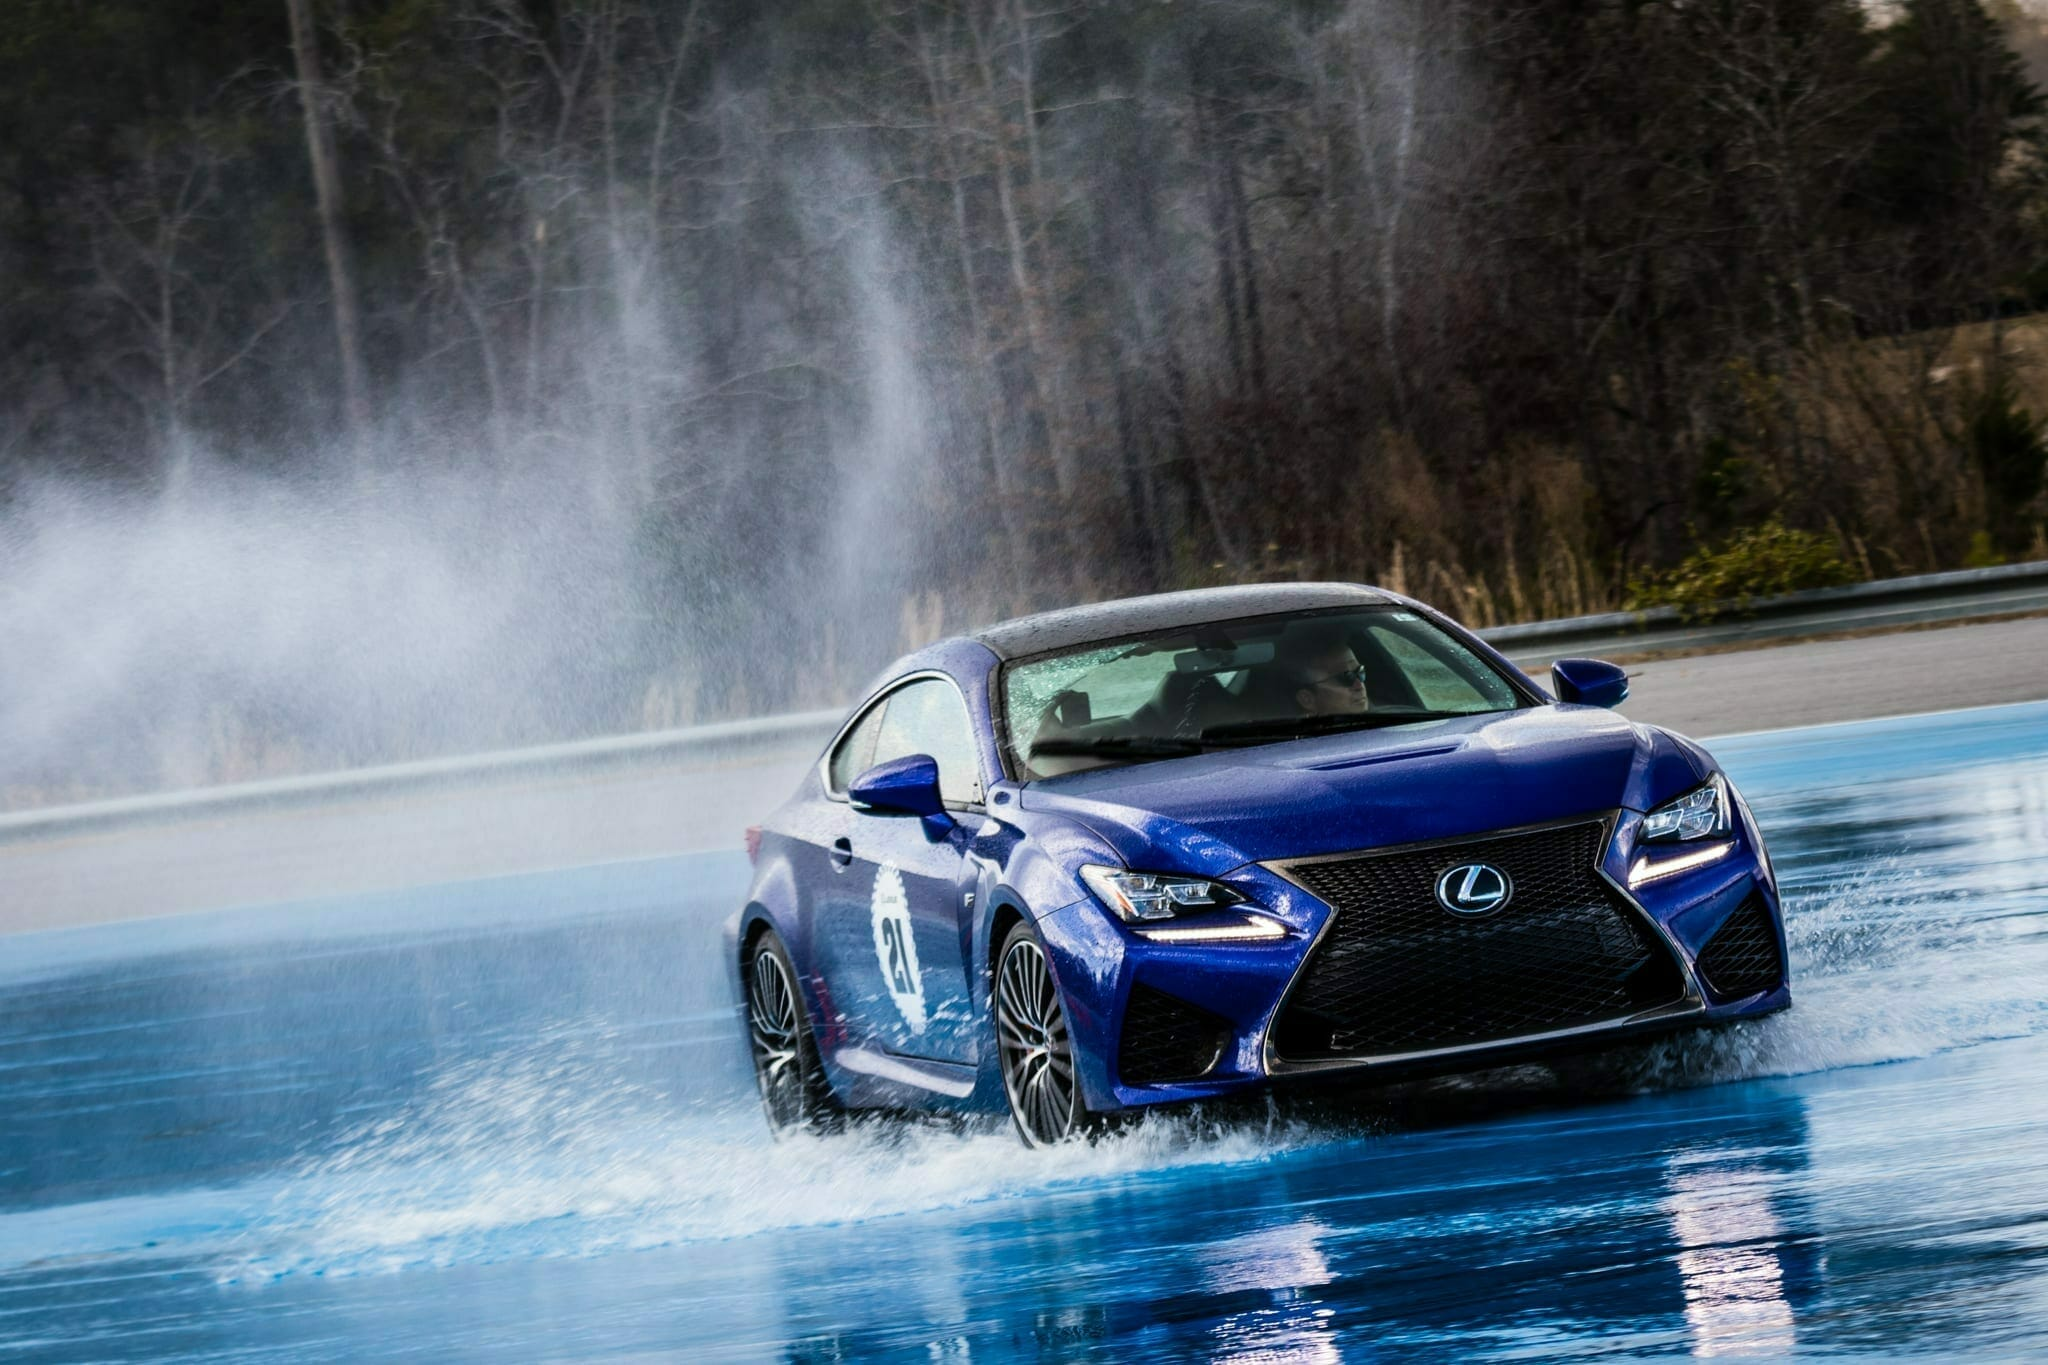 Lexus Performance Driving School selects AMP as one of two track locations for 2018